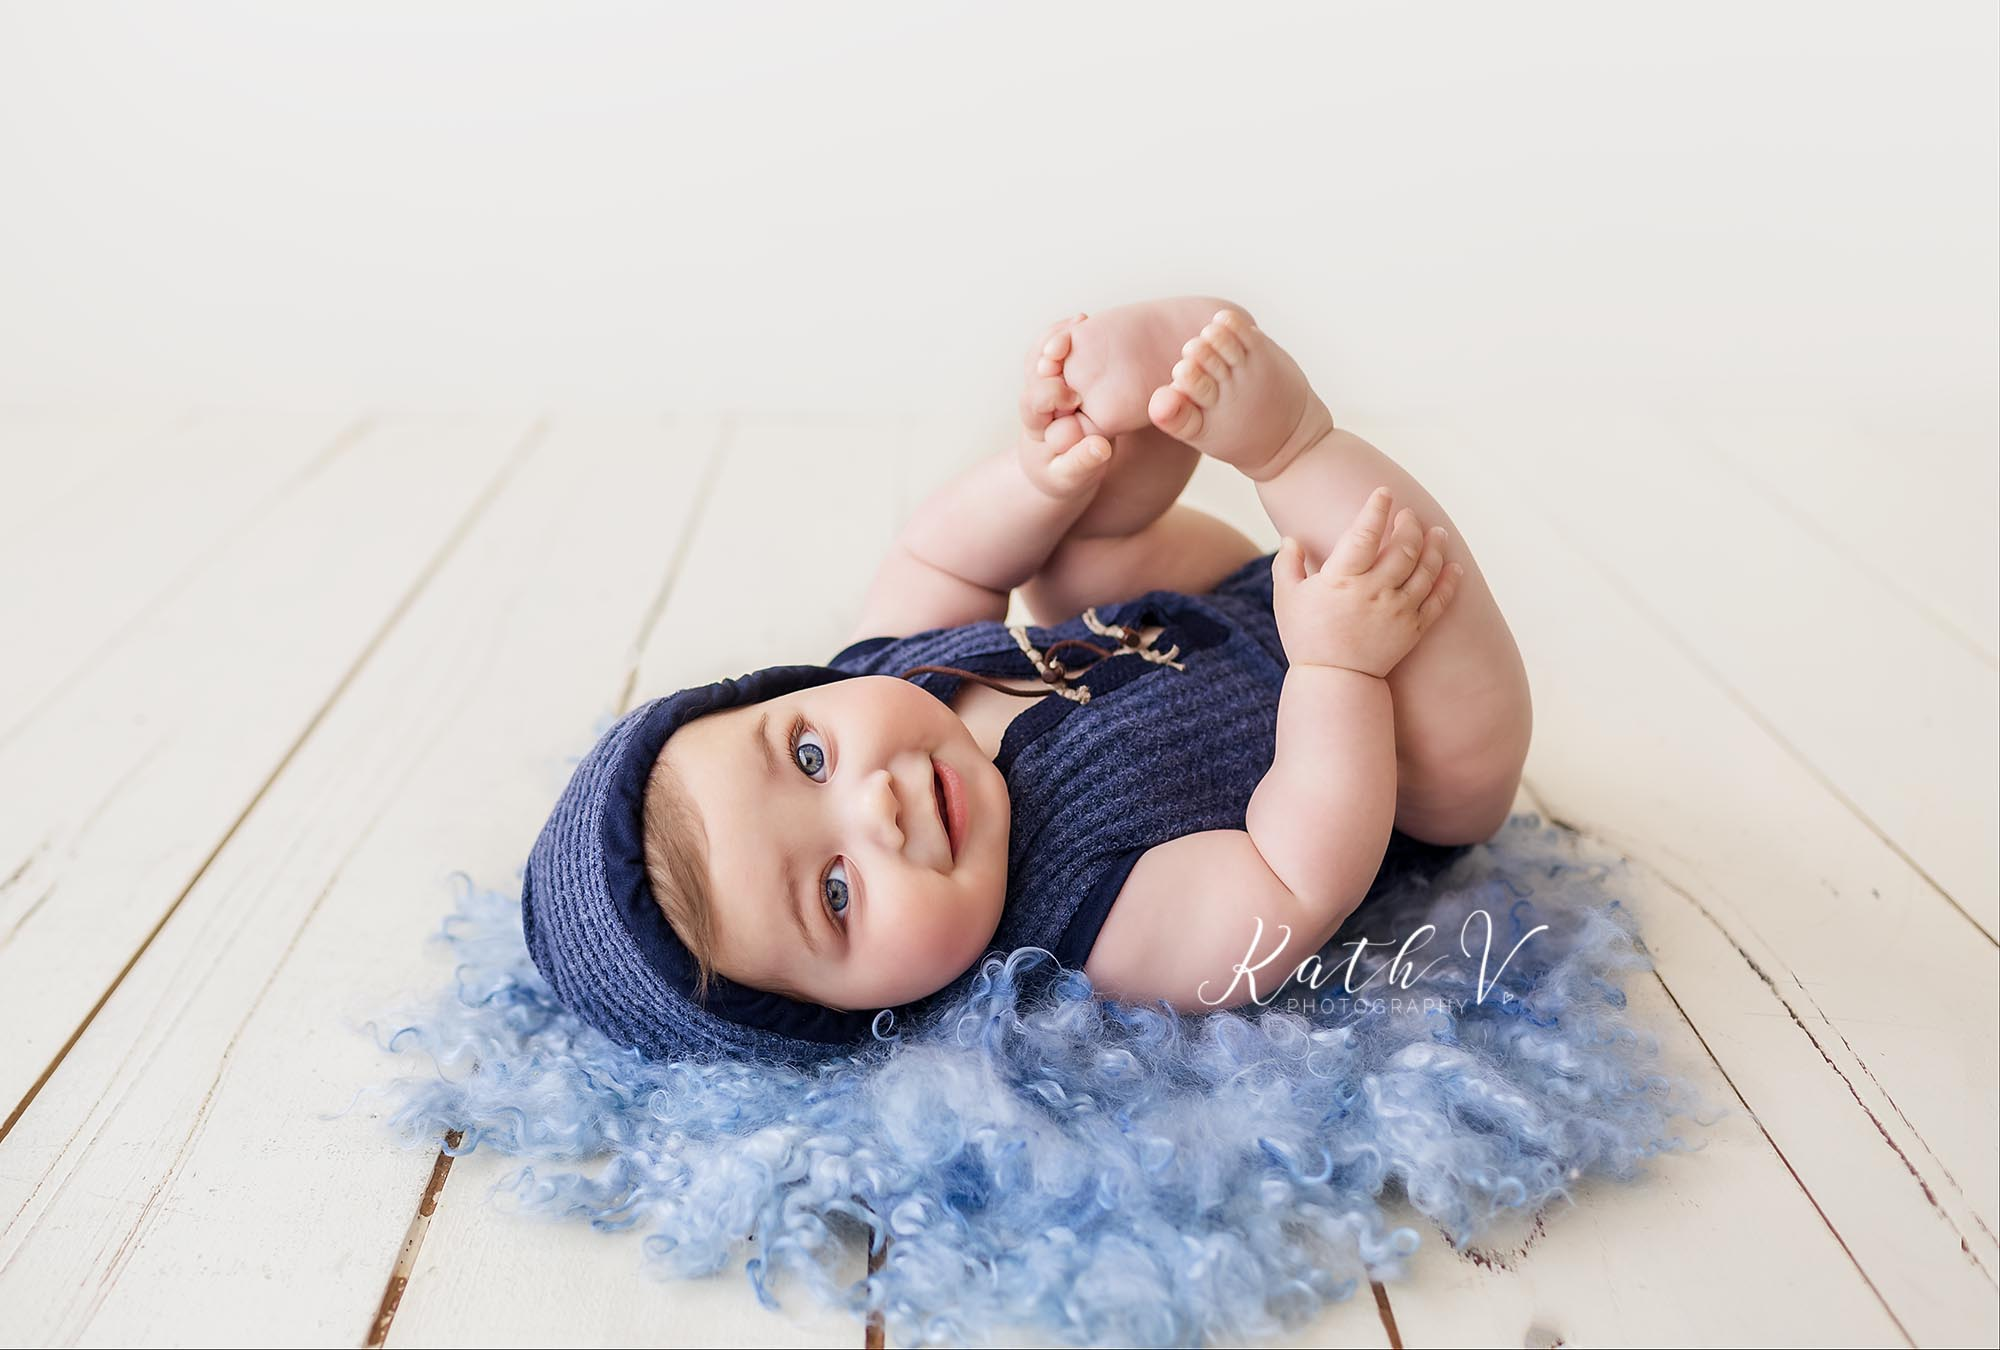 Melbourne Baby Photography | Kath V. Photography_440.jpg